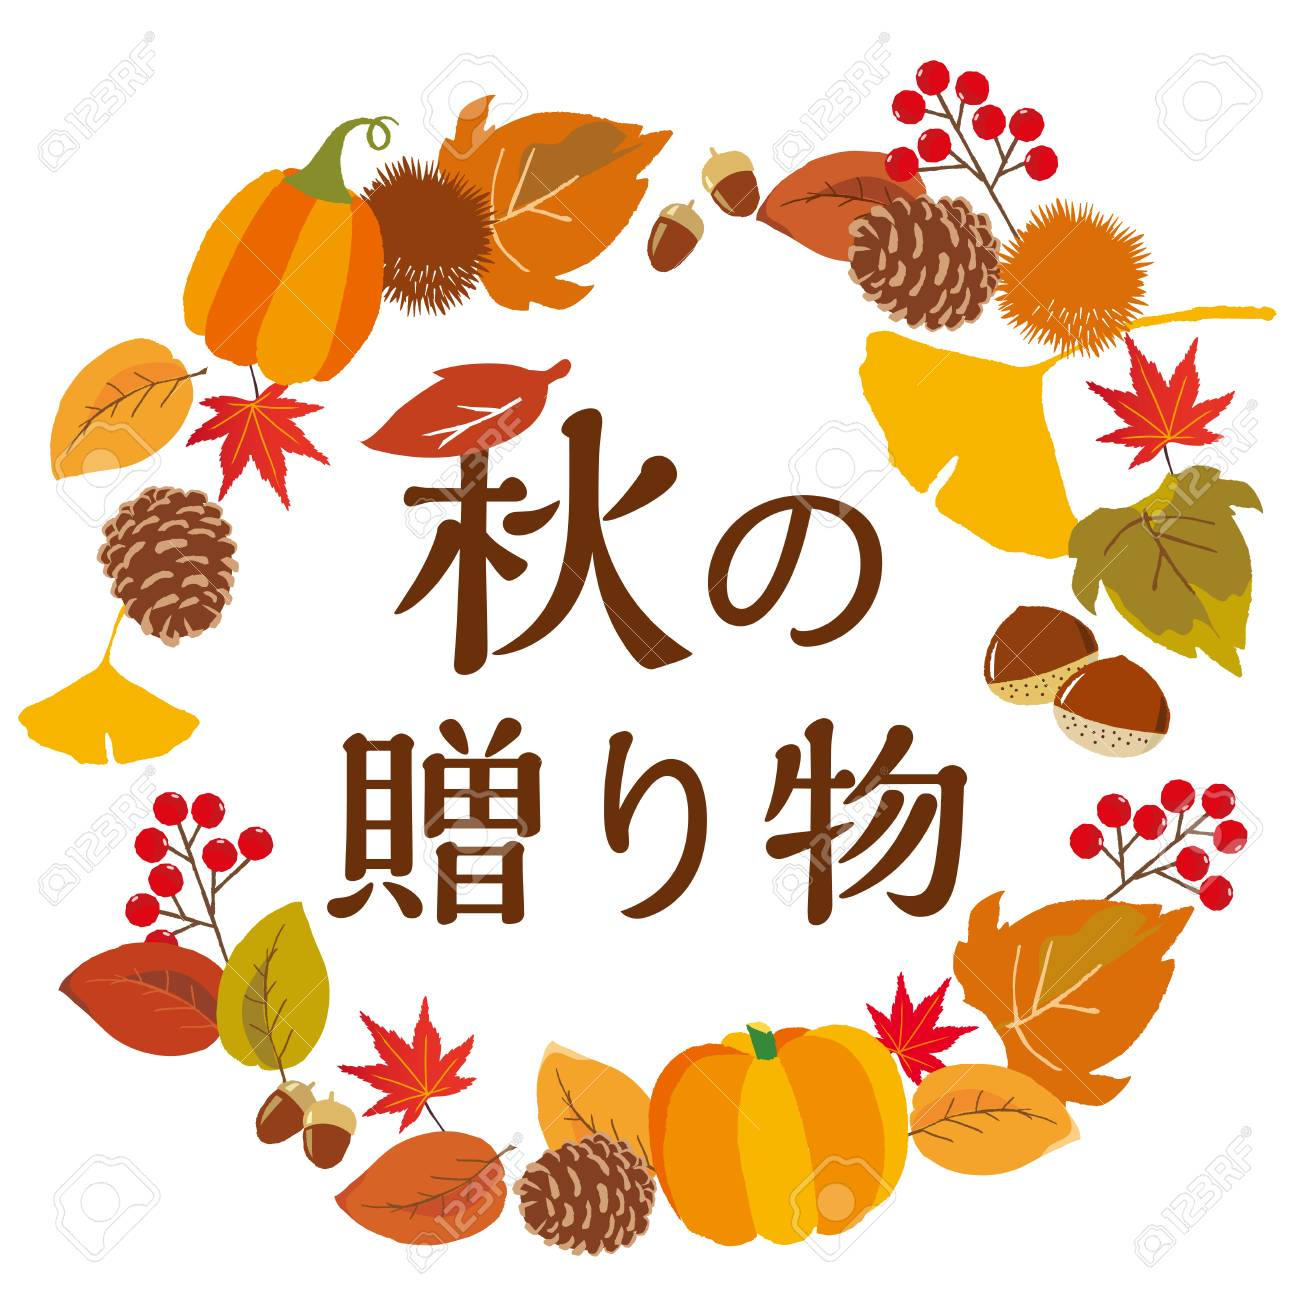 """background with autumn food and leaves / Japanese translation is """"Present for autumn"""" - 84781643"""